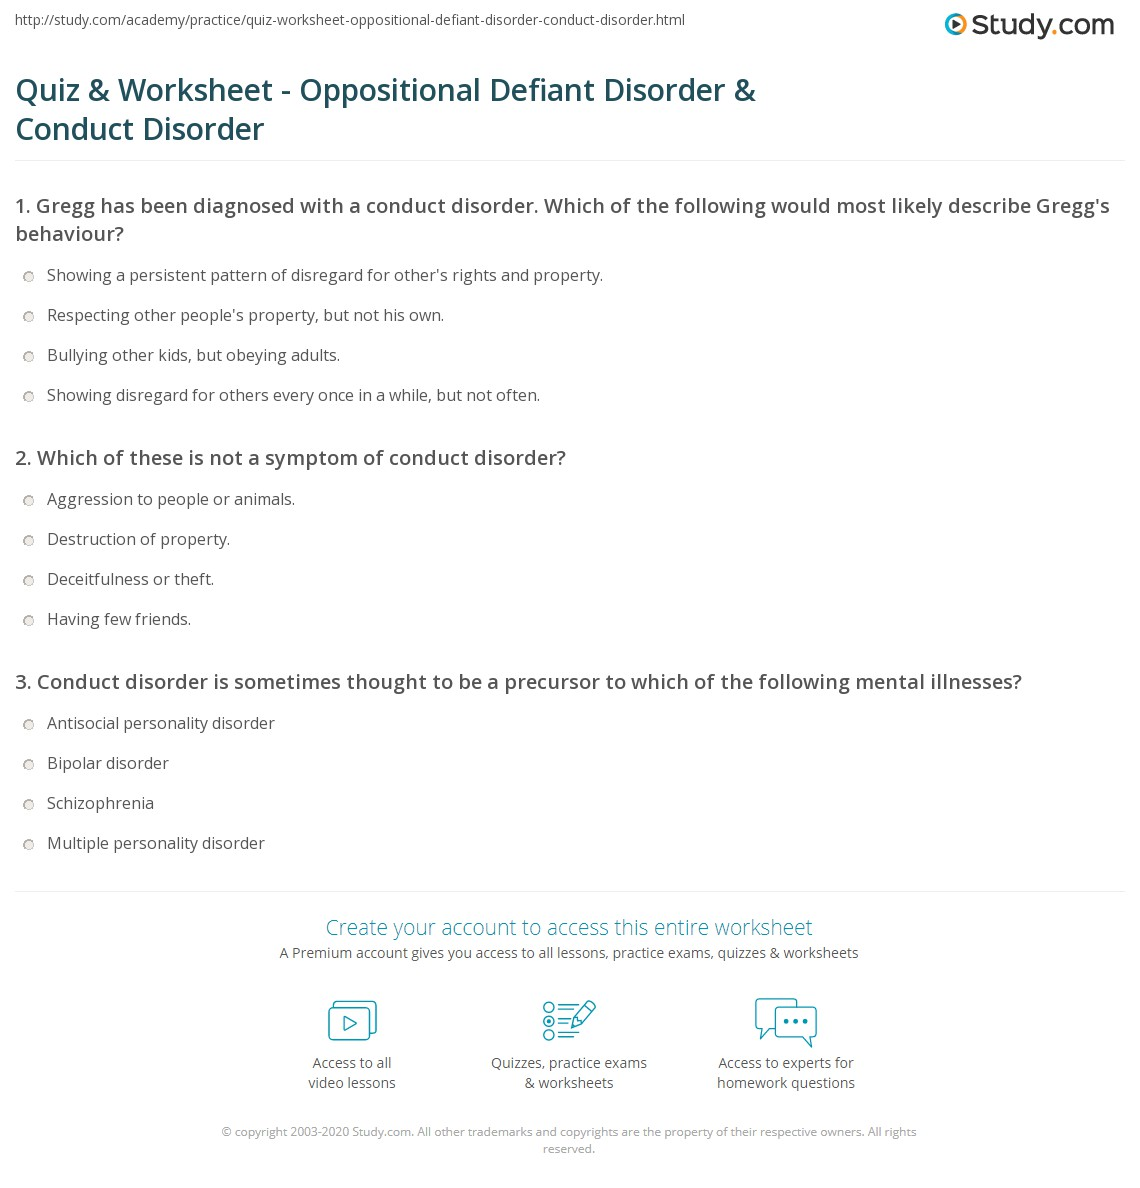 quiz worksheet oppositional defiant disorder conduct disorder